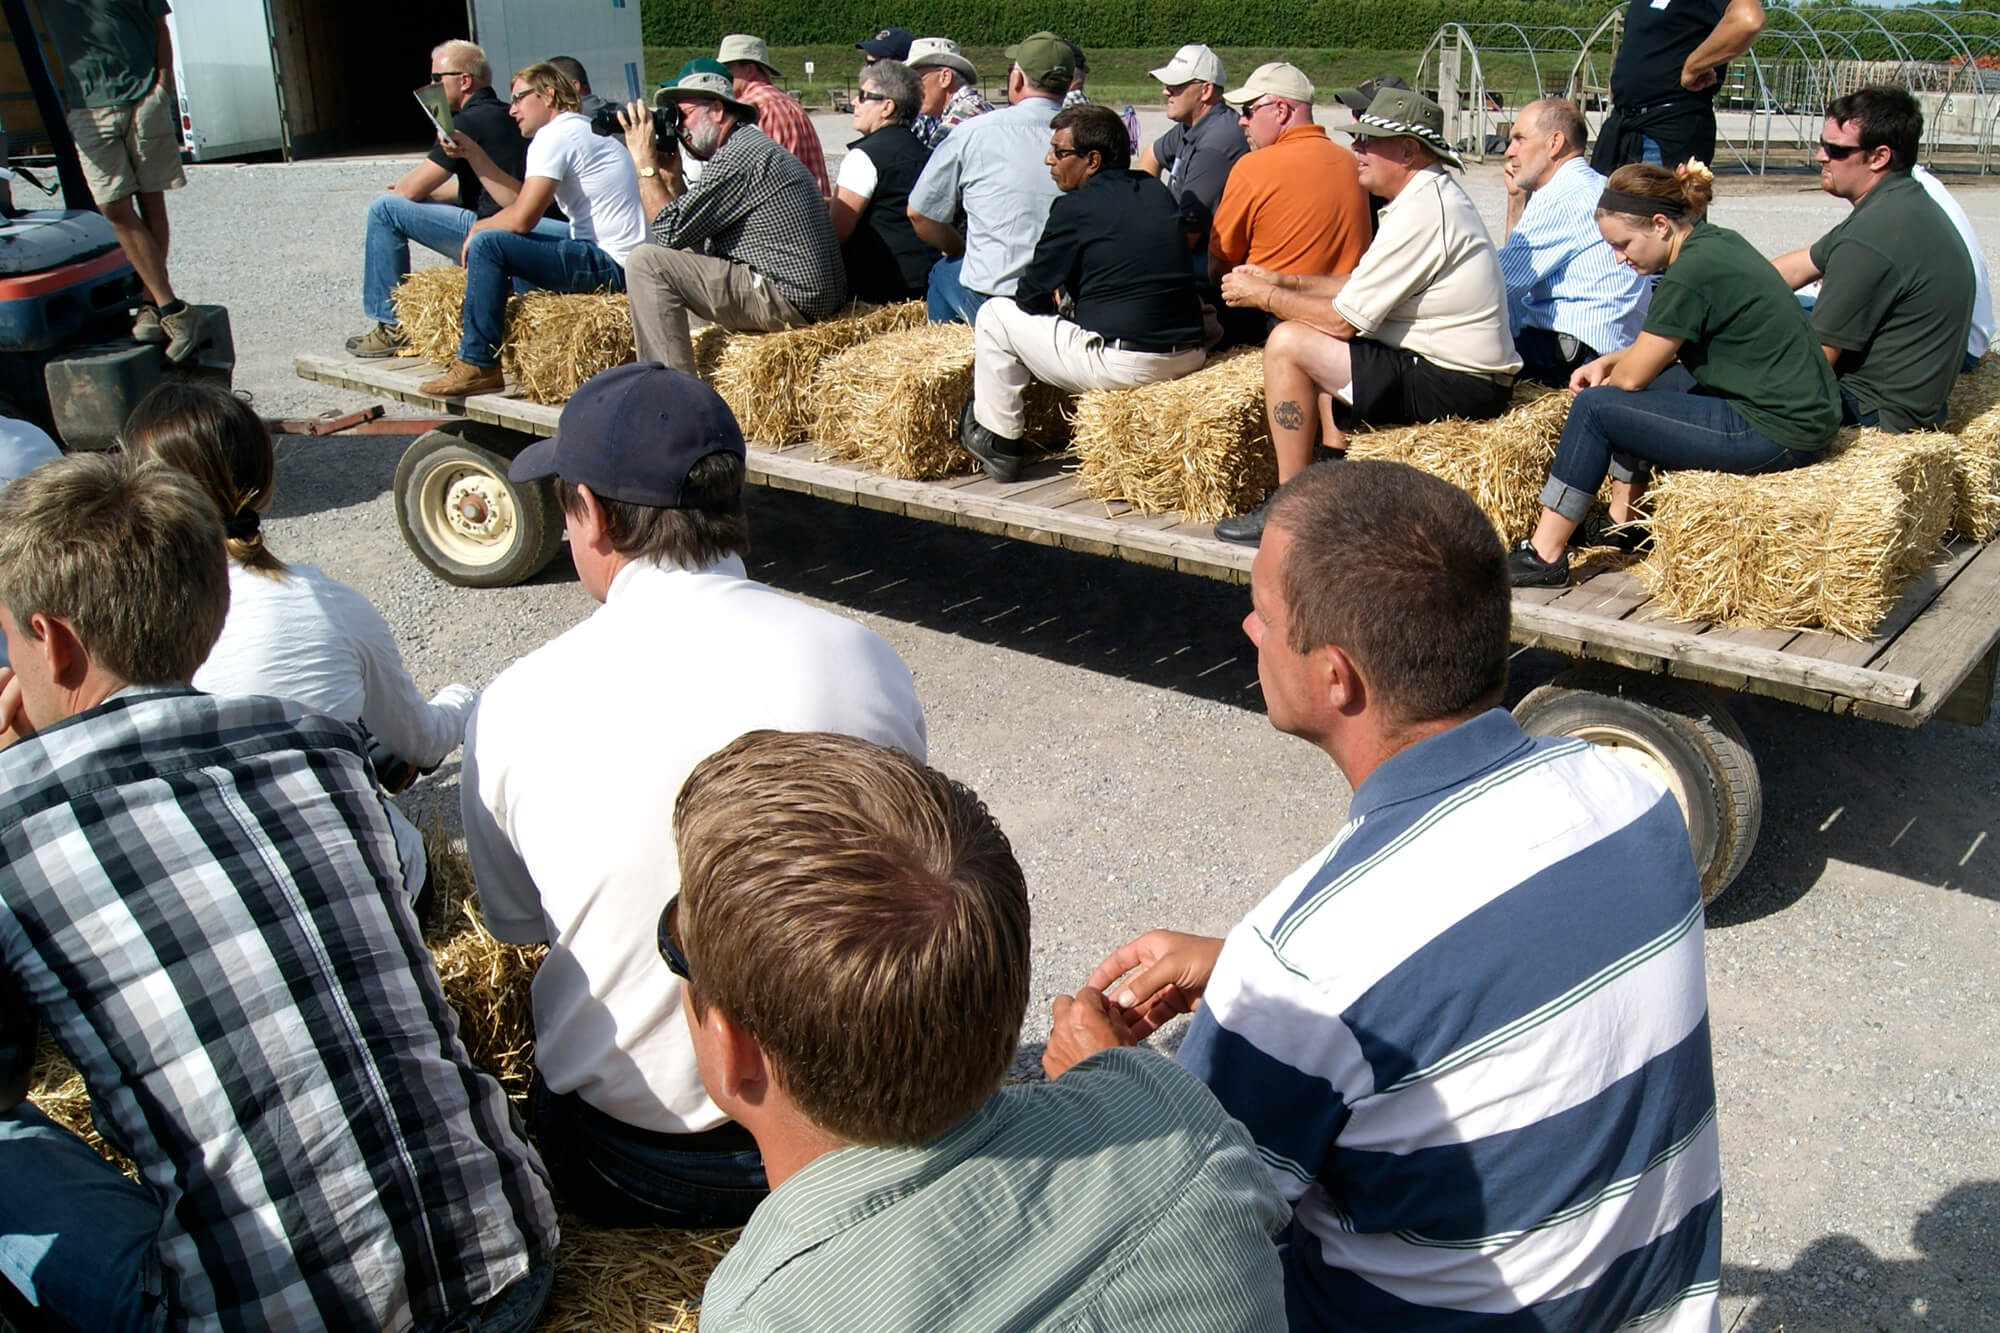 people on a wagon ride tour of a nursery grower